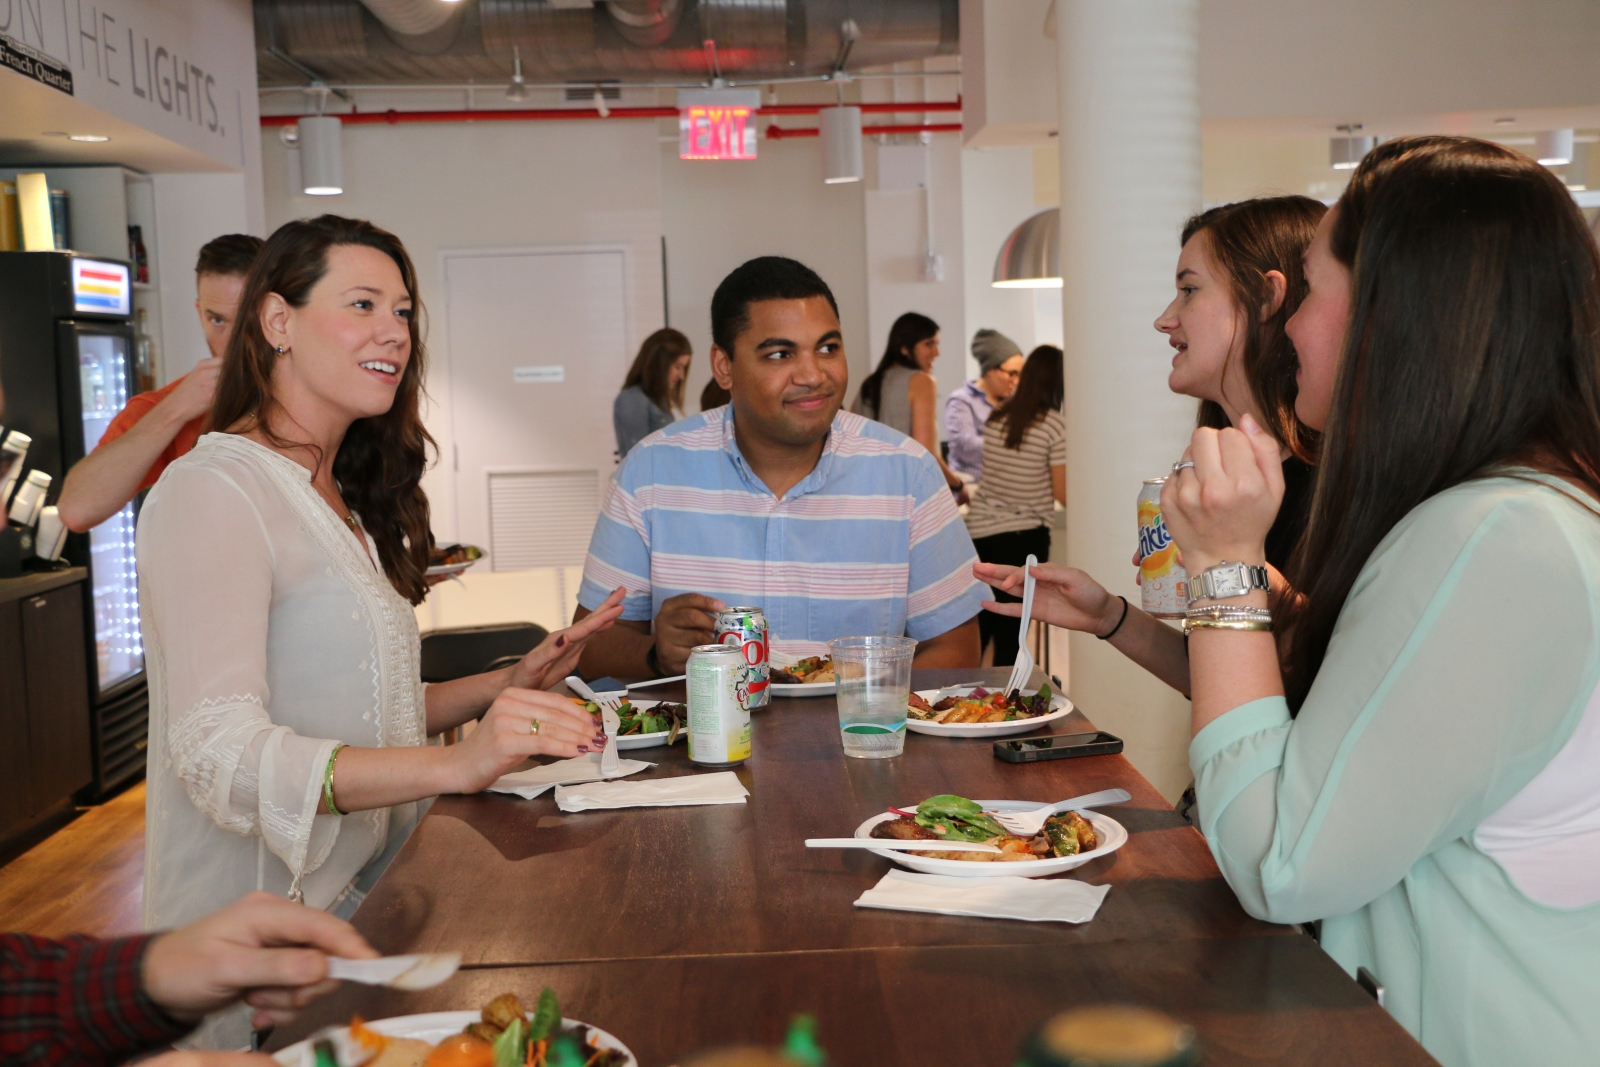 Streeteasy Ranks Among Best Companies To Work For In New